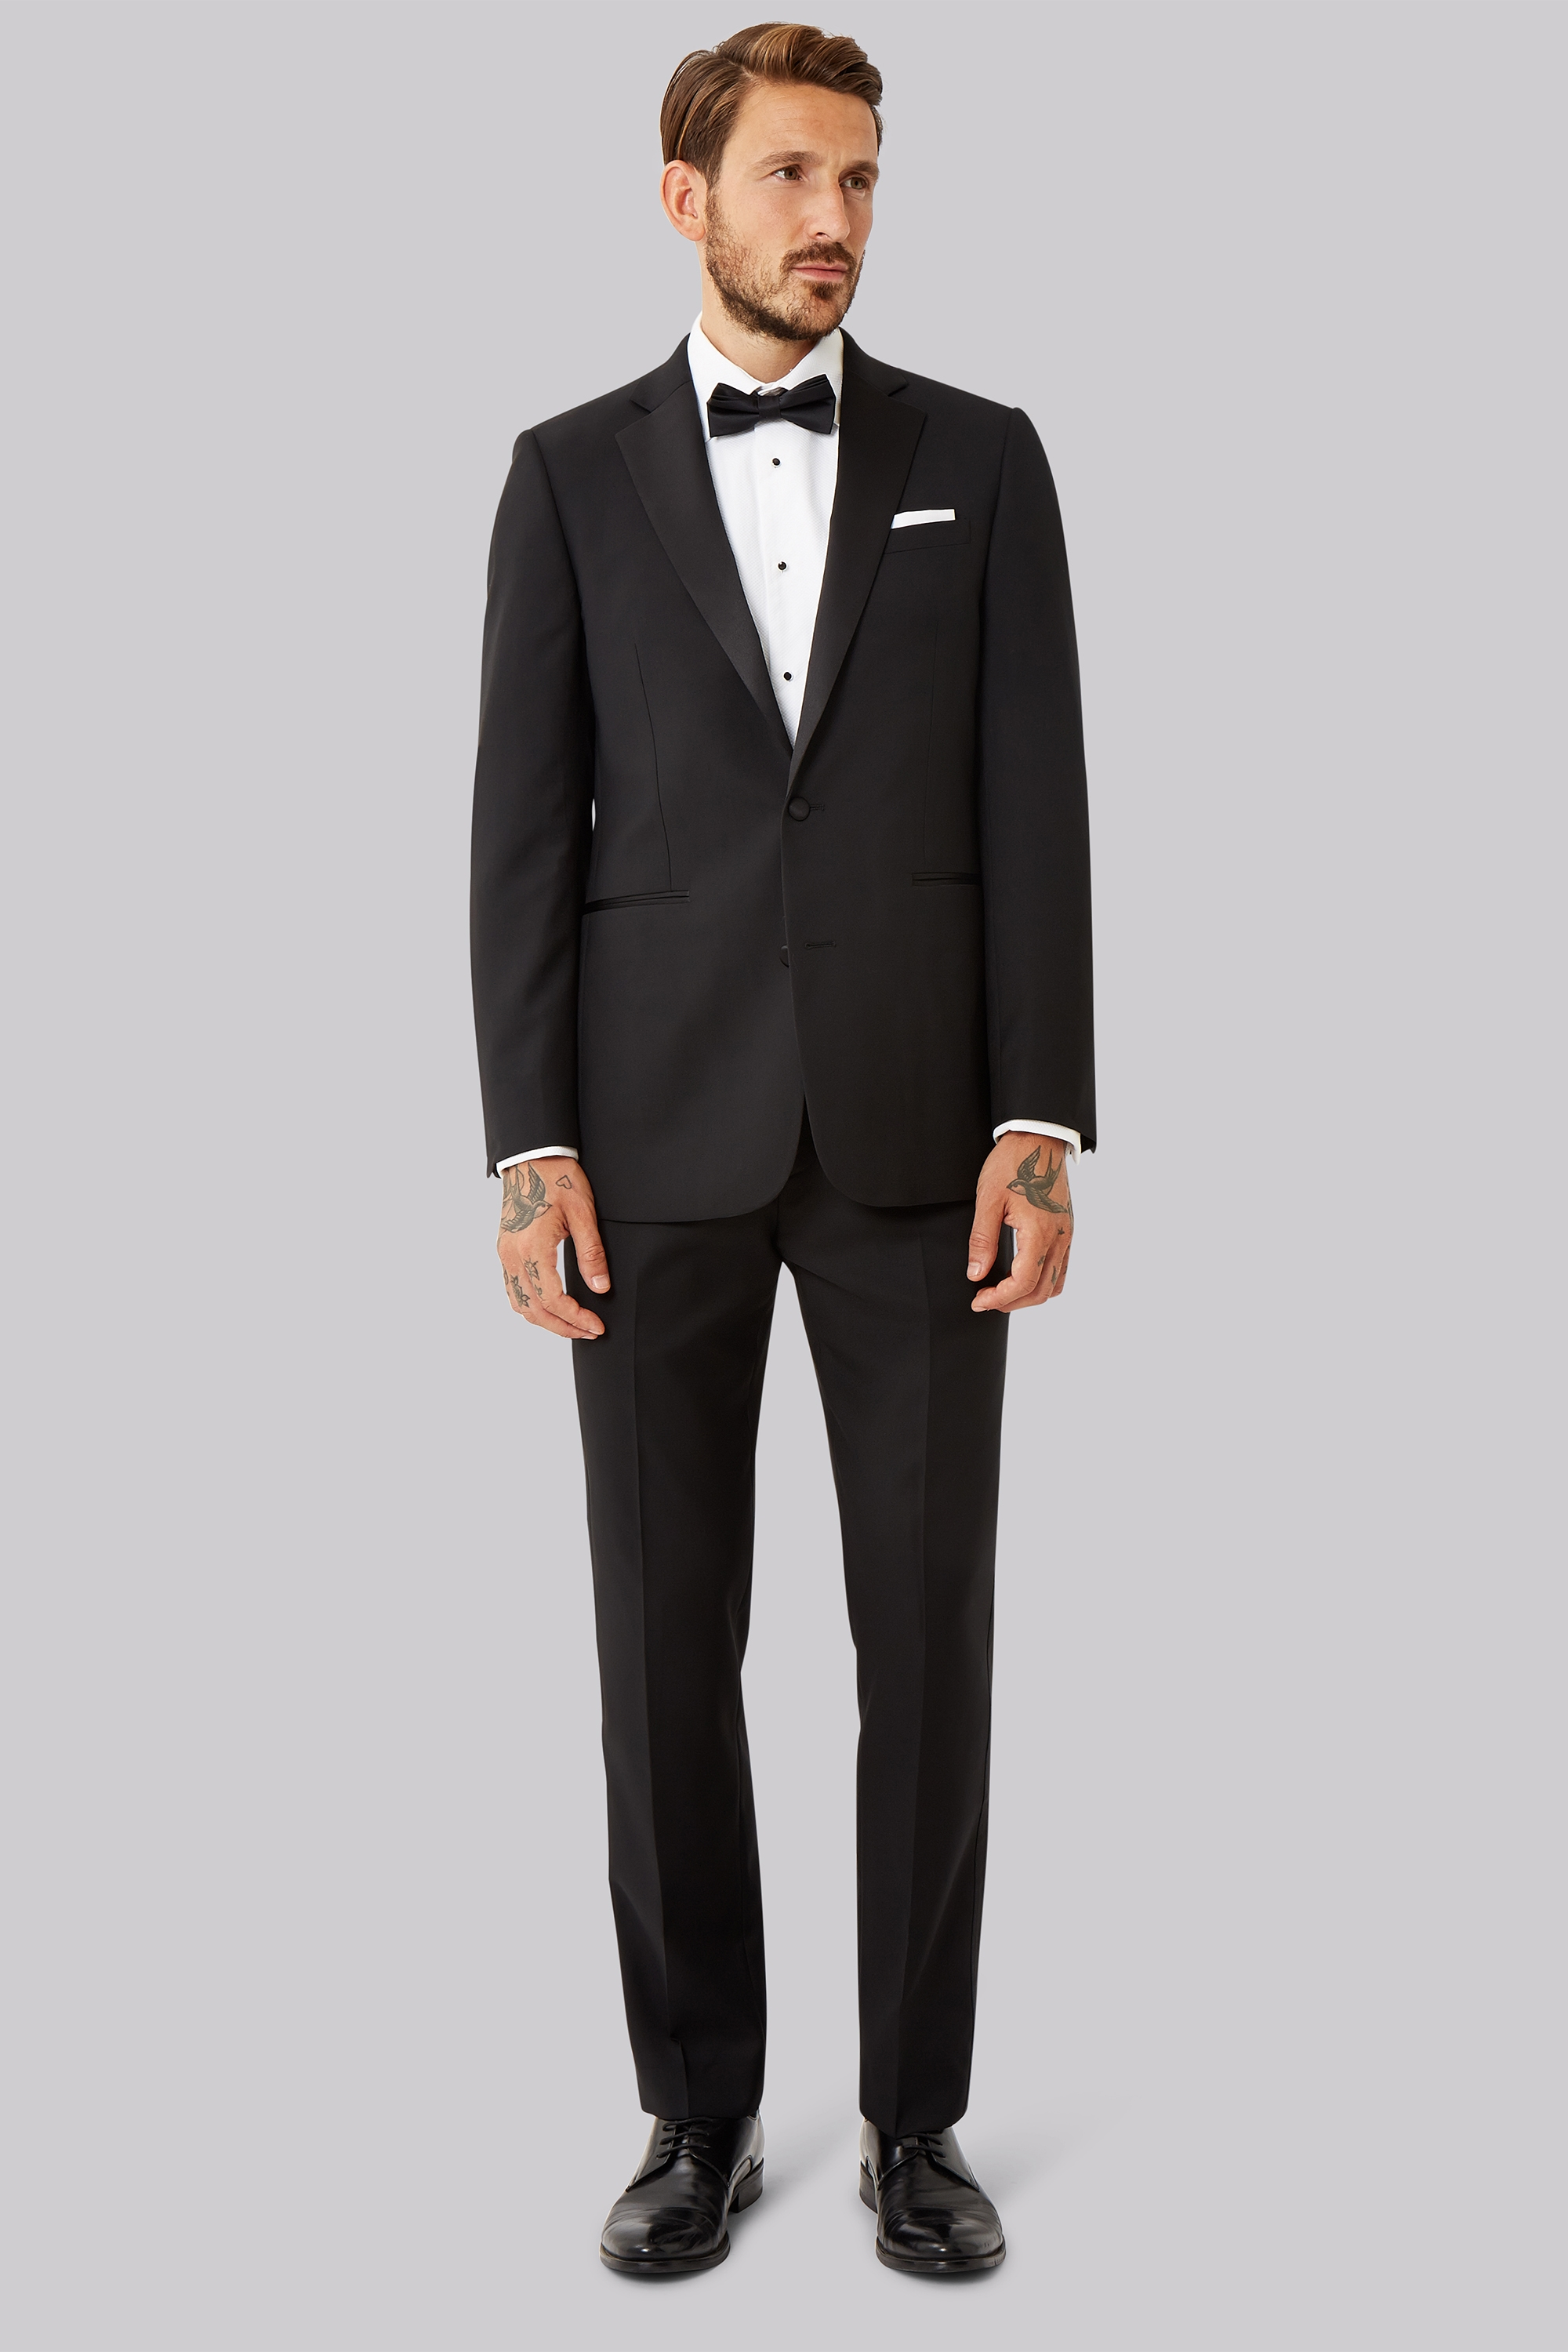 Step 1: Make sure your tux fits.